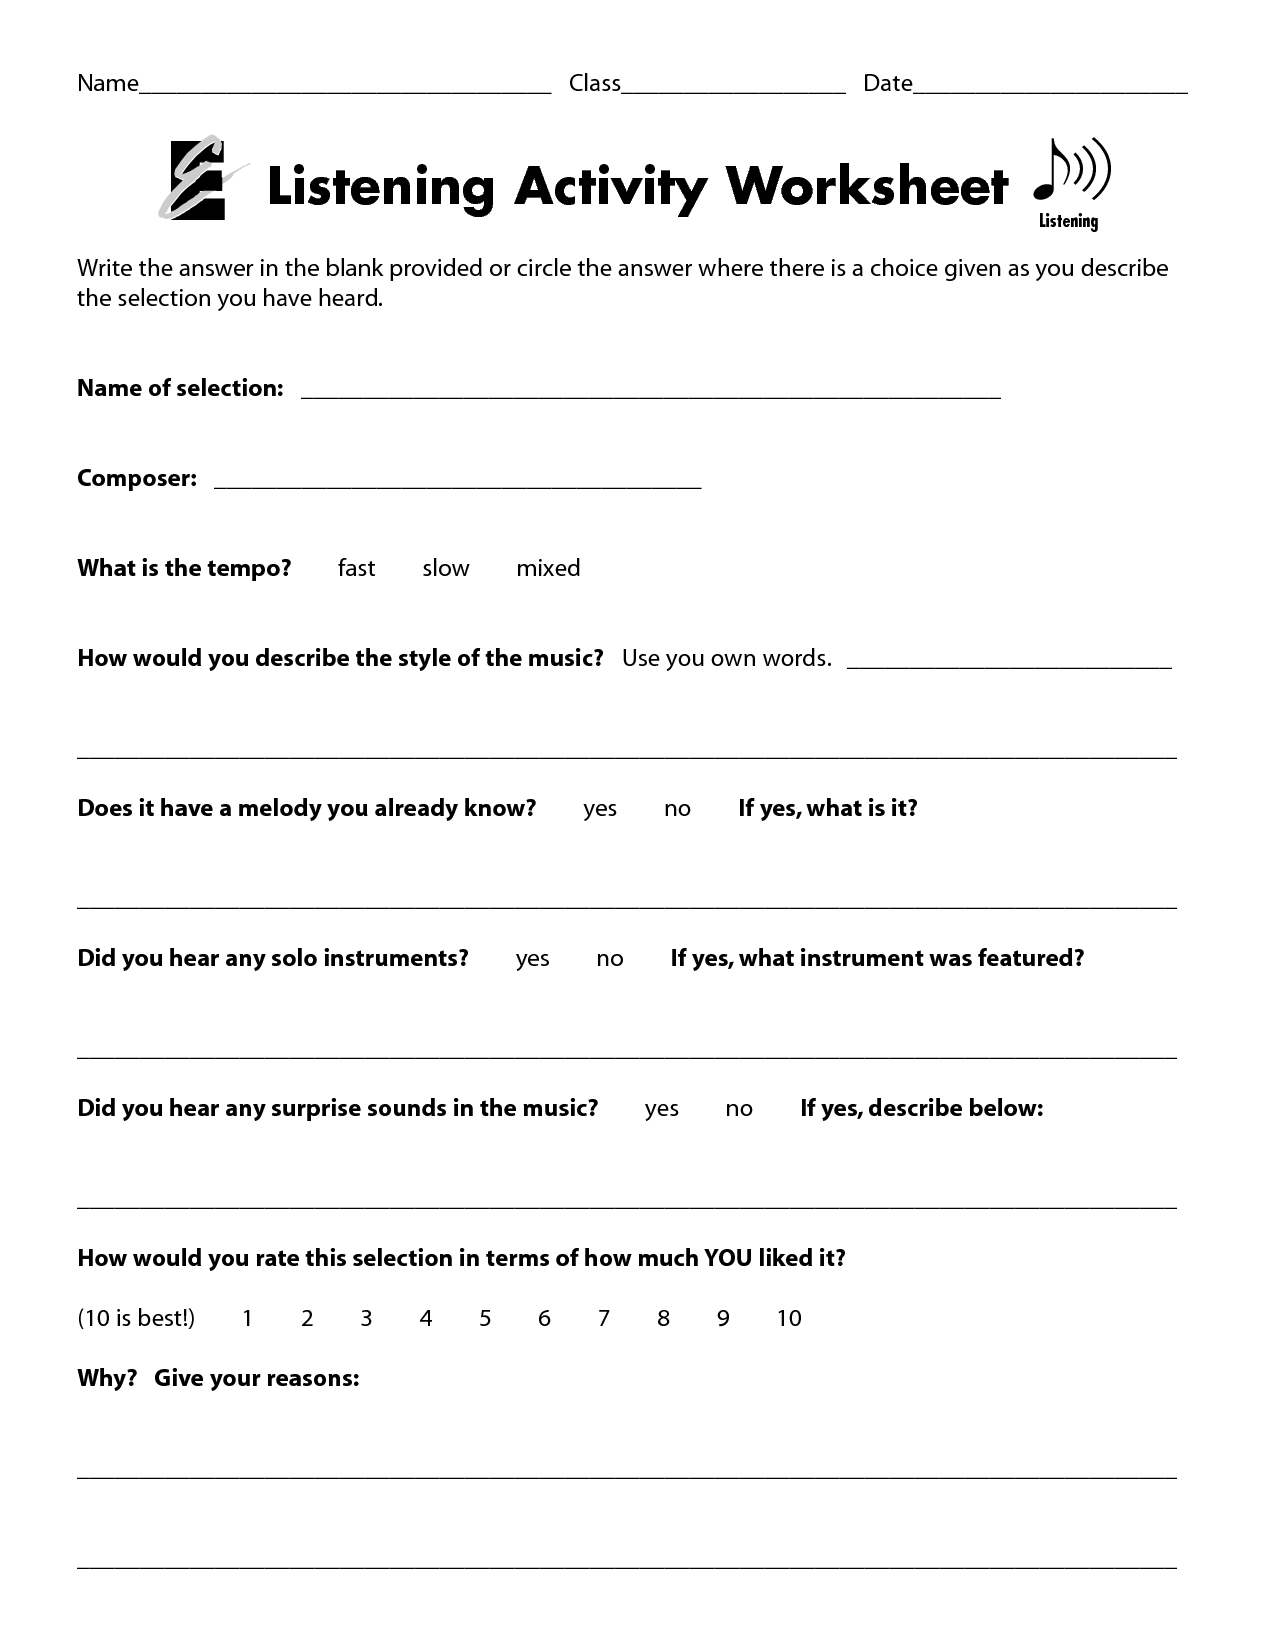 Worksheets Listening Skills Worksheets listening activity worksheet pinterest worksheets worksheet